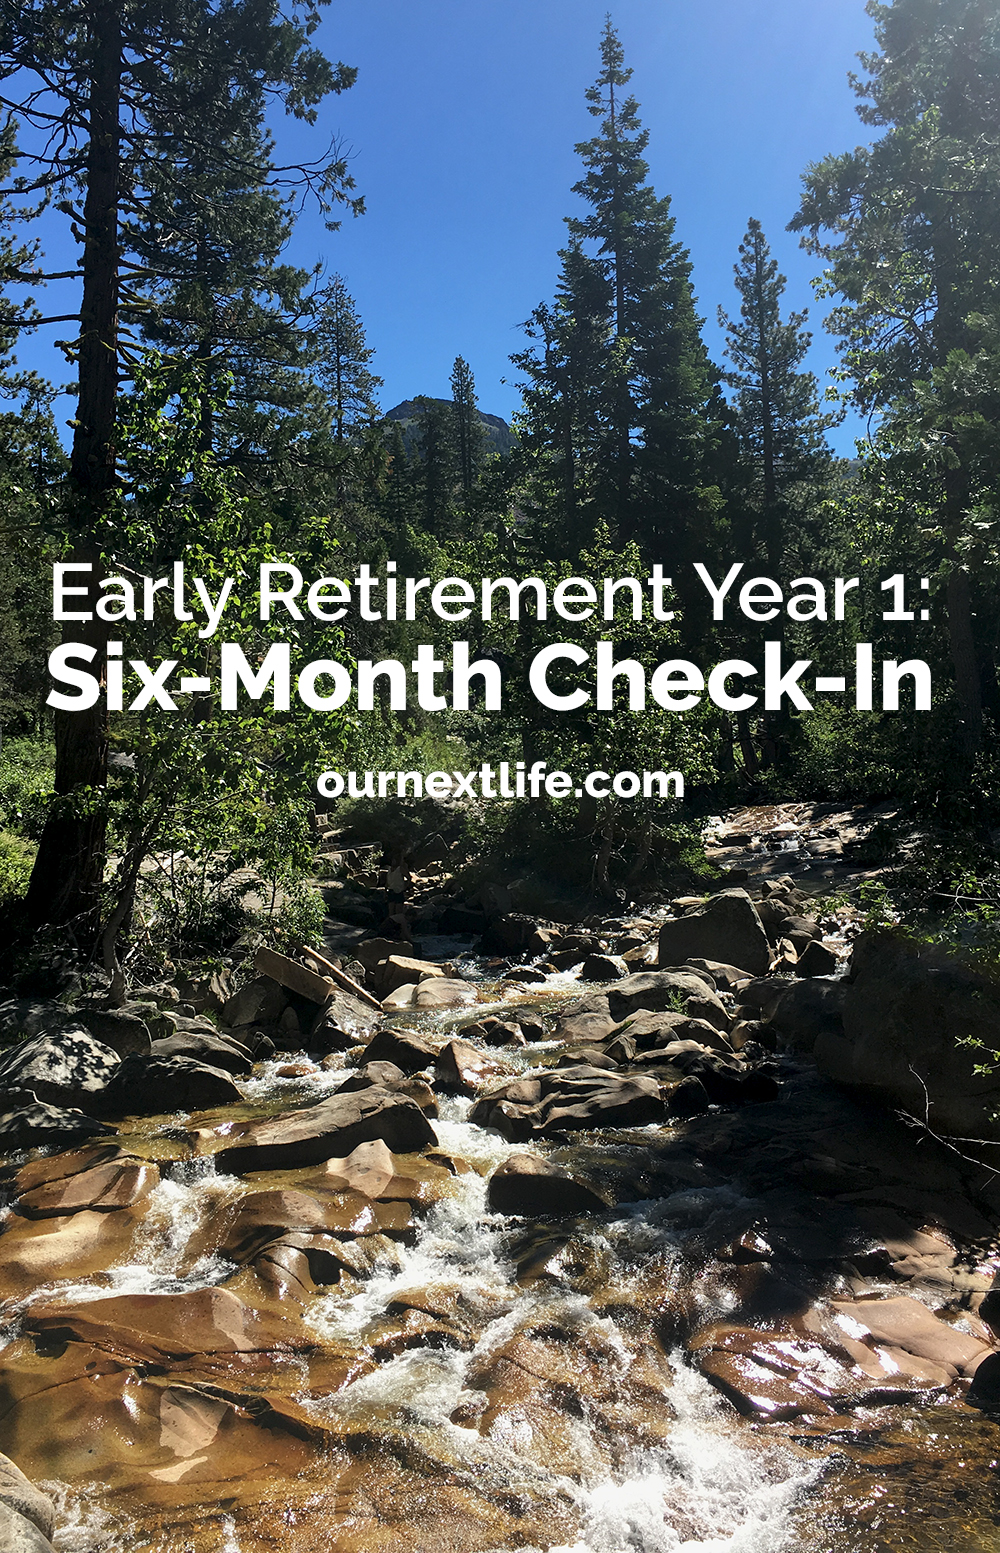 OurNextLife.com // First Year of Early Retirement, Six Month Check-In // Financial independence, happiness, adventure, FIRE movement